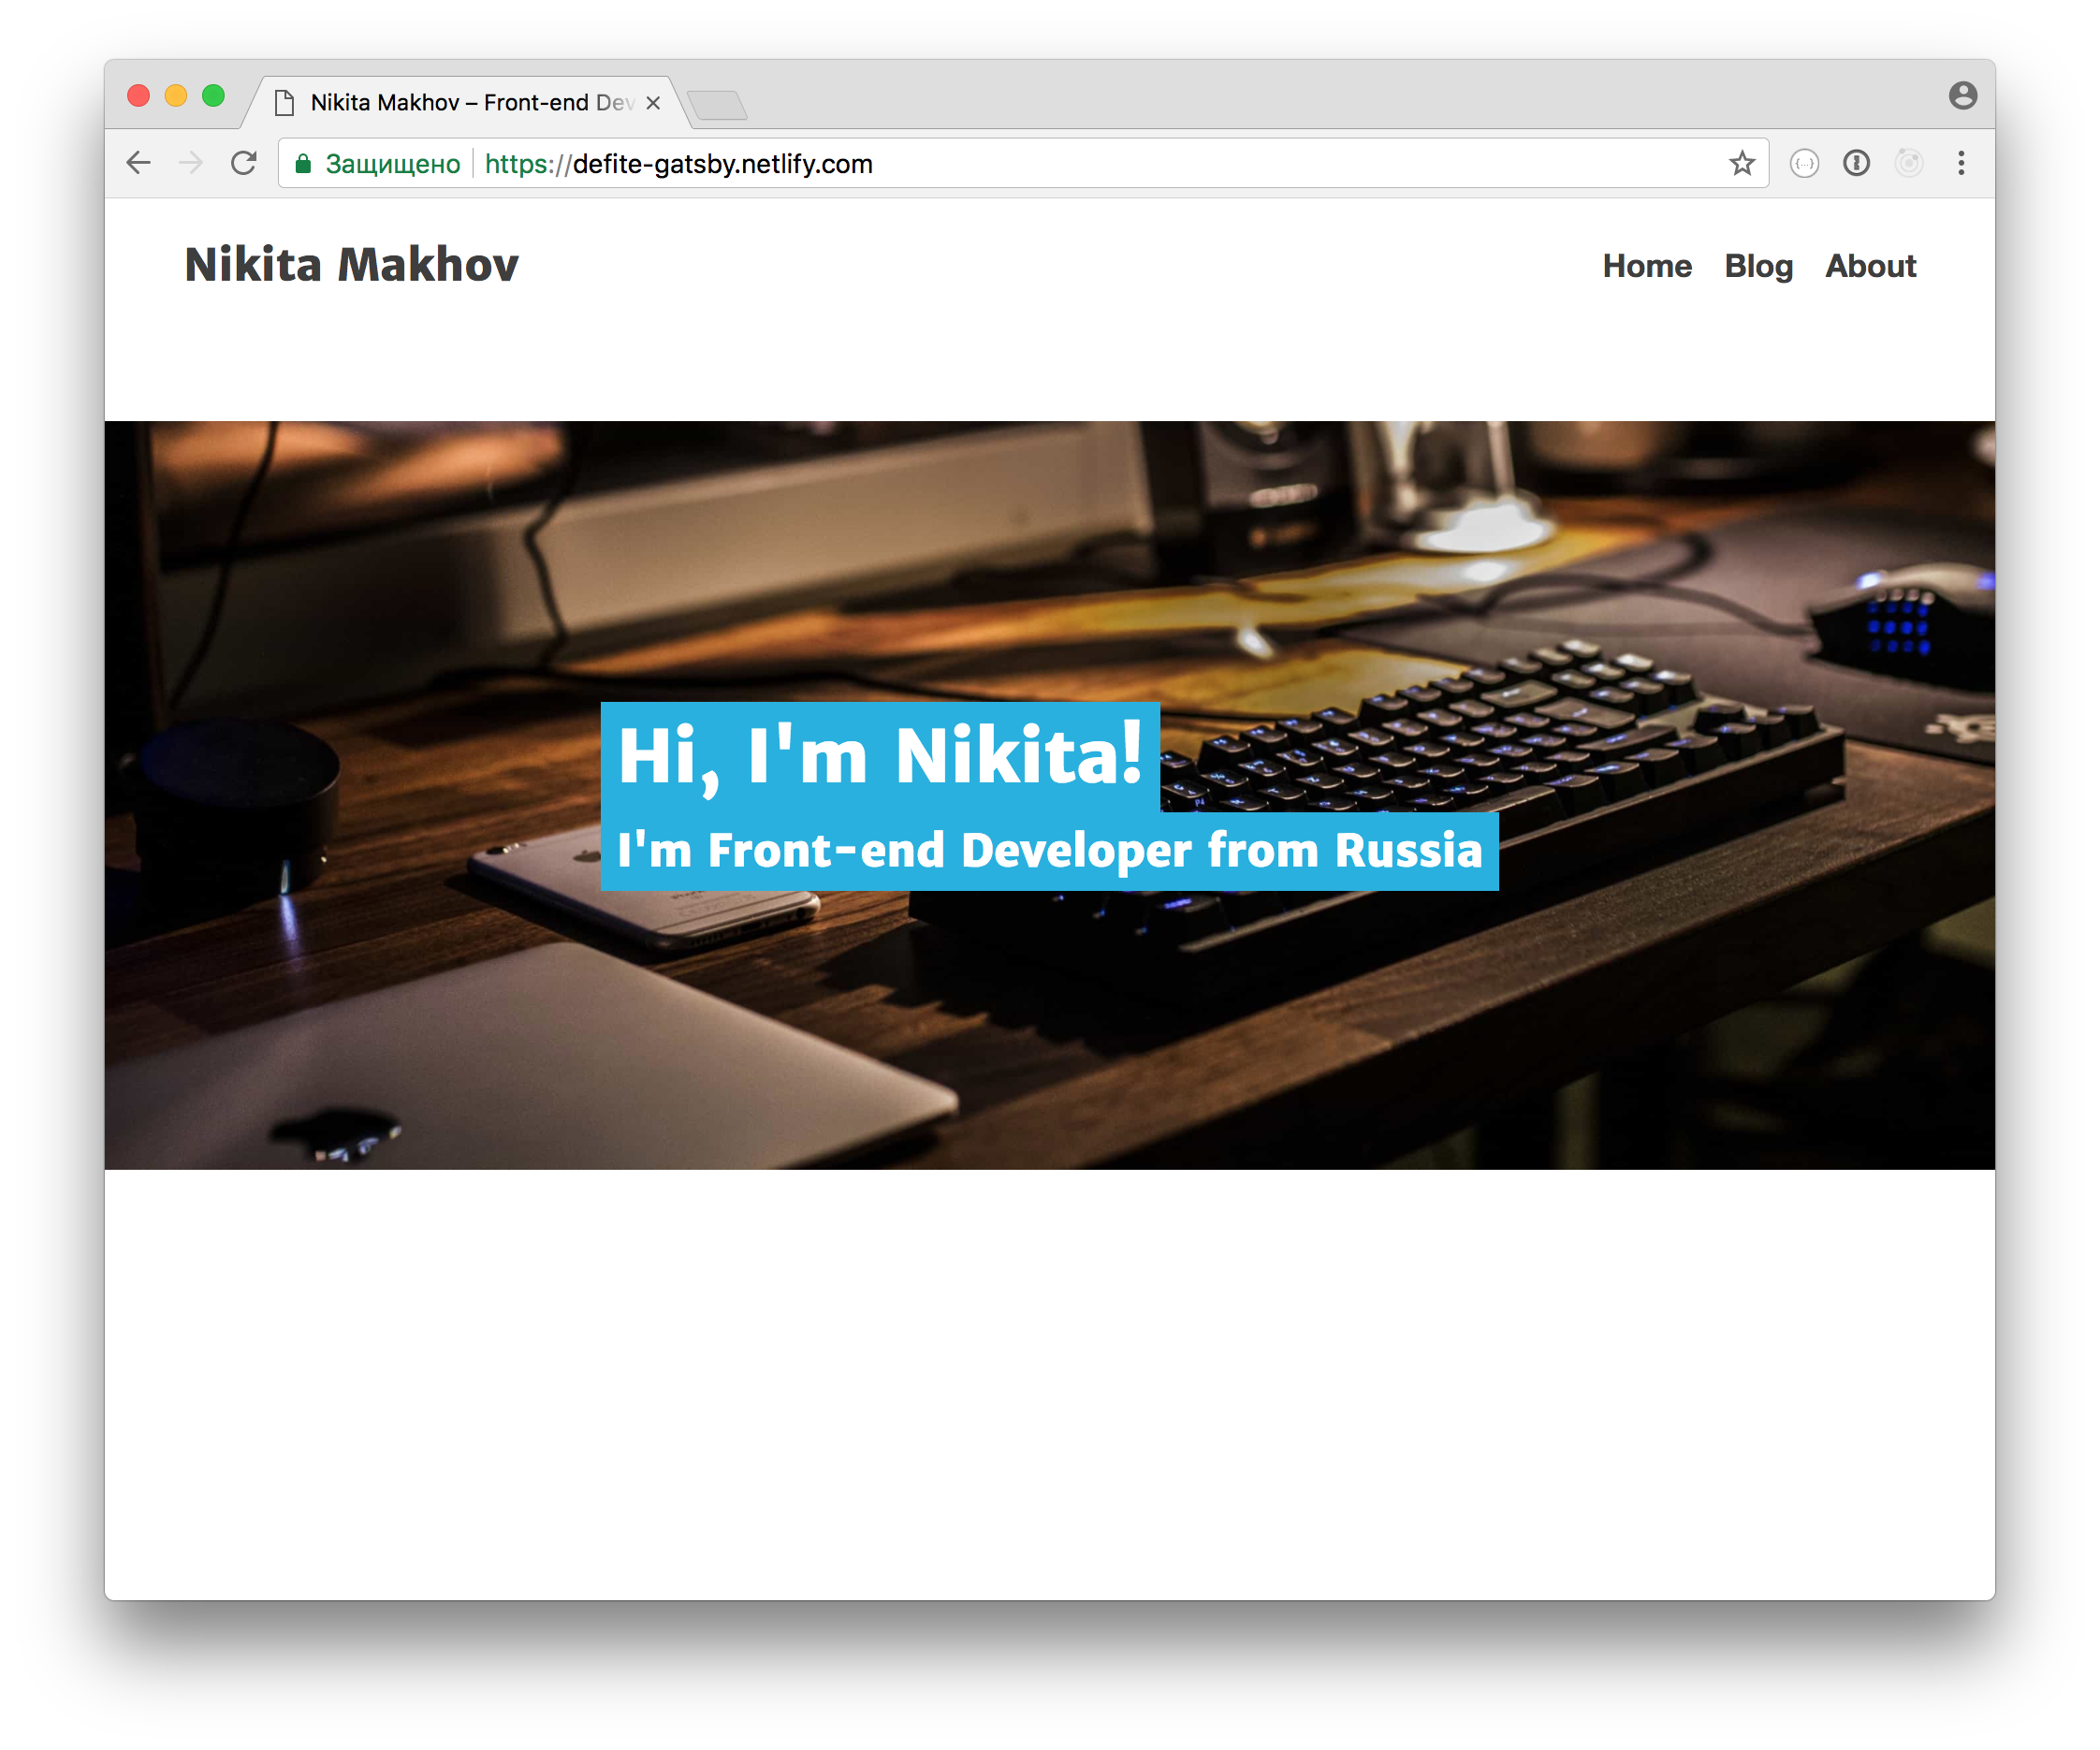 Personal site built on Gatsby